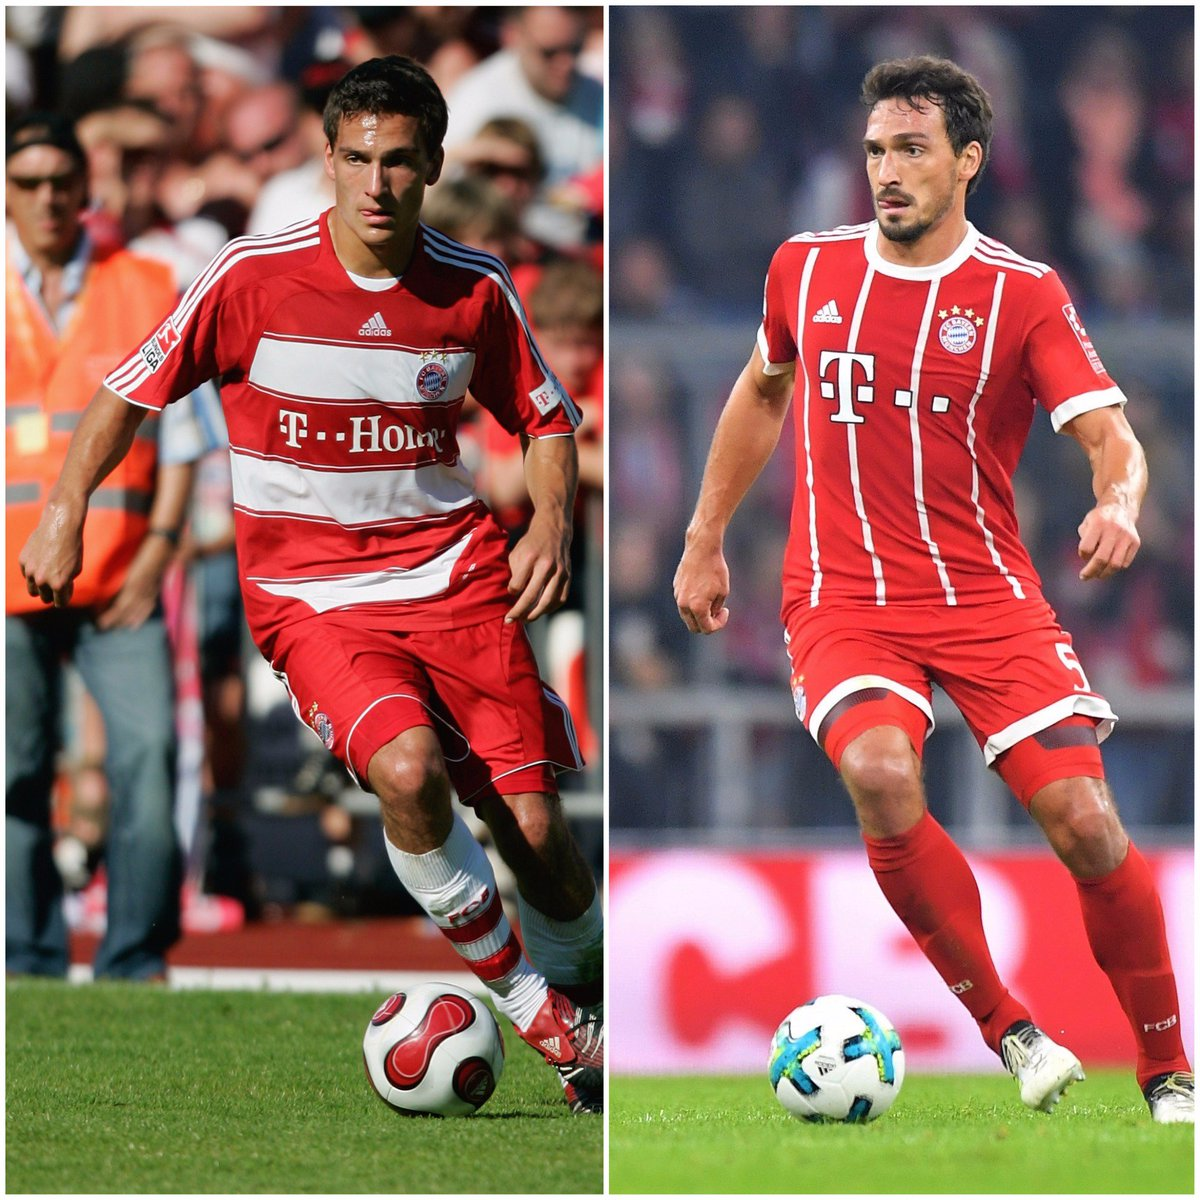 Tens years apart, not much has changed 😜 @matshummels #MiaSanMia #Flas...